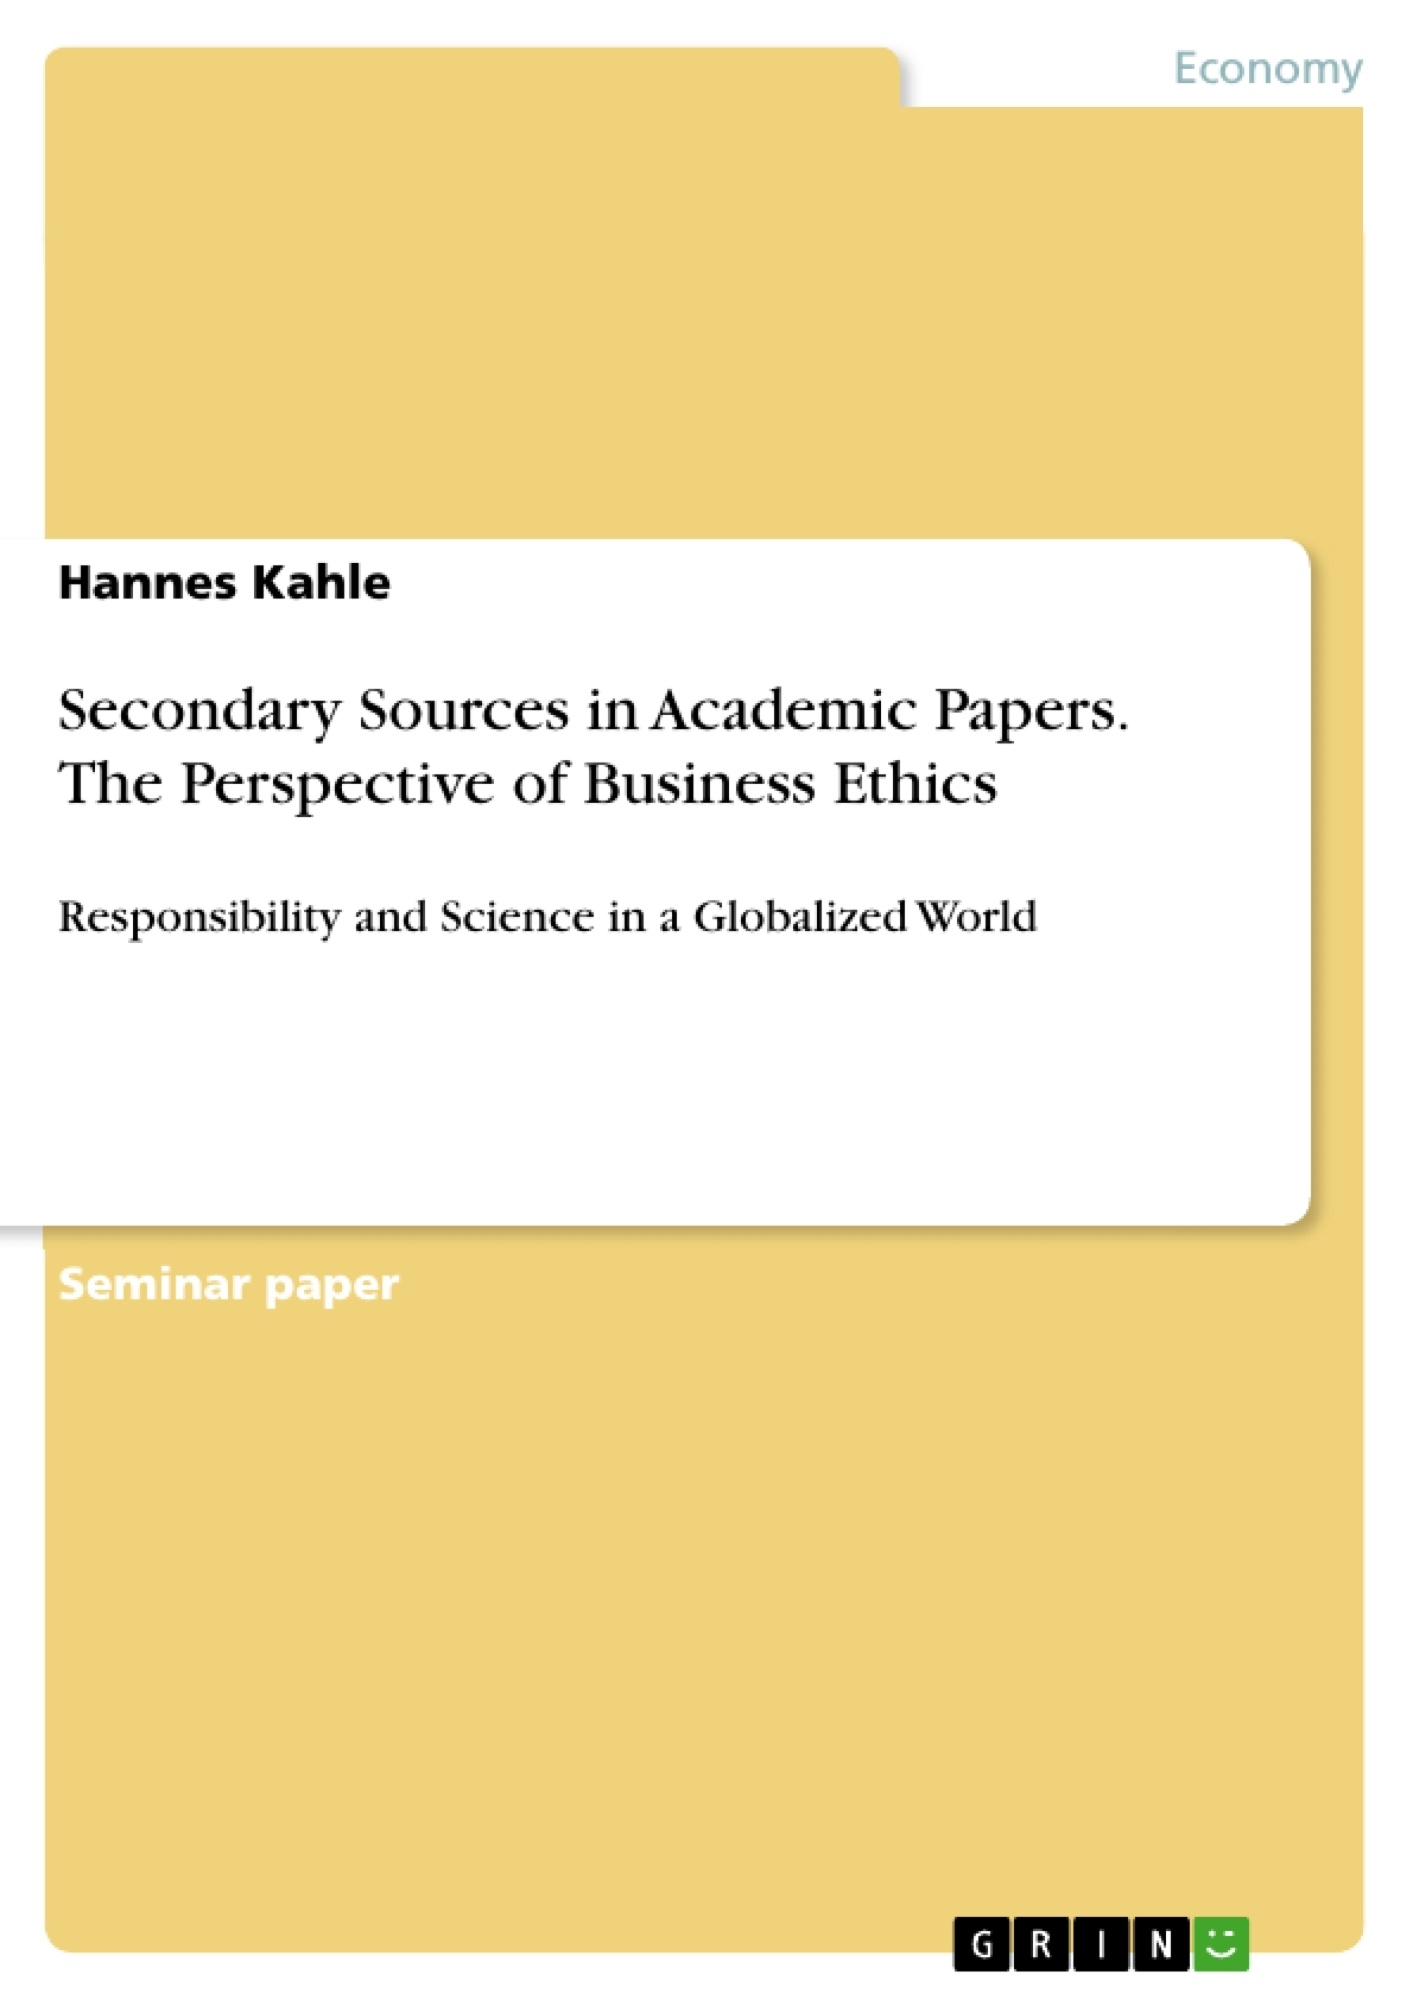 Title: Secondary Sources in Academic Papers. The Perspective of Business Ethics